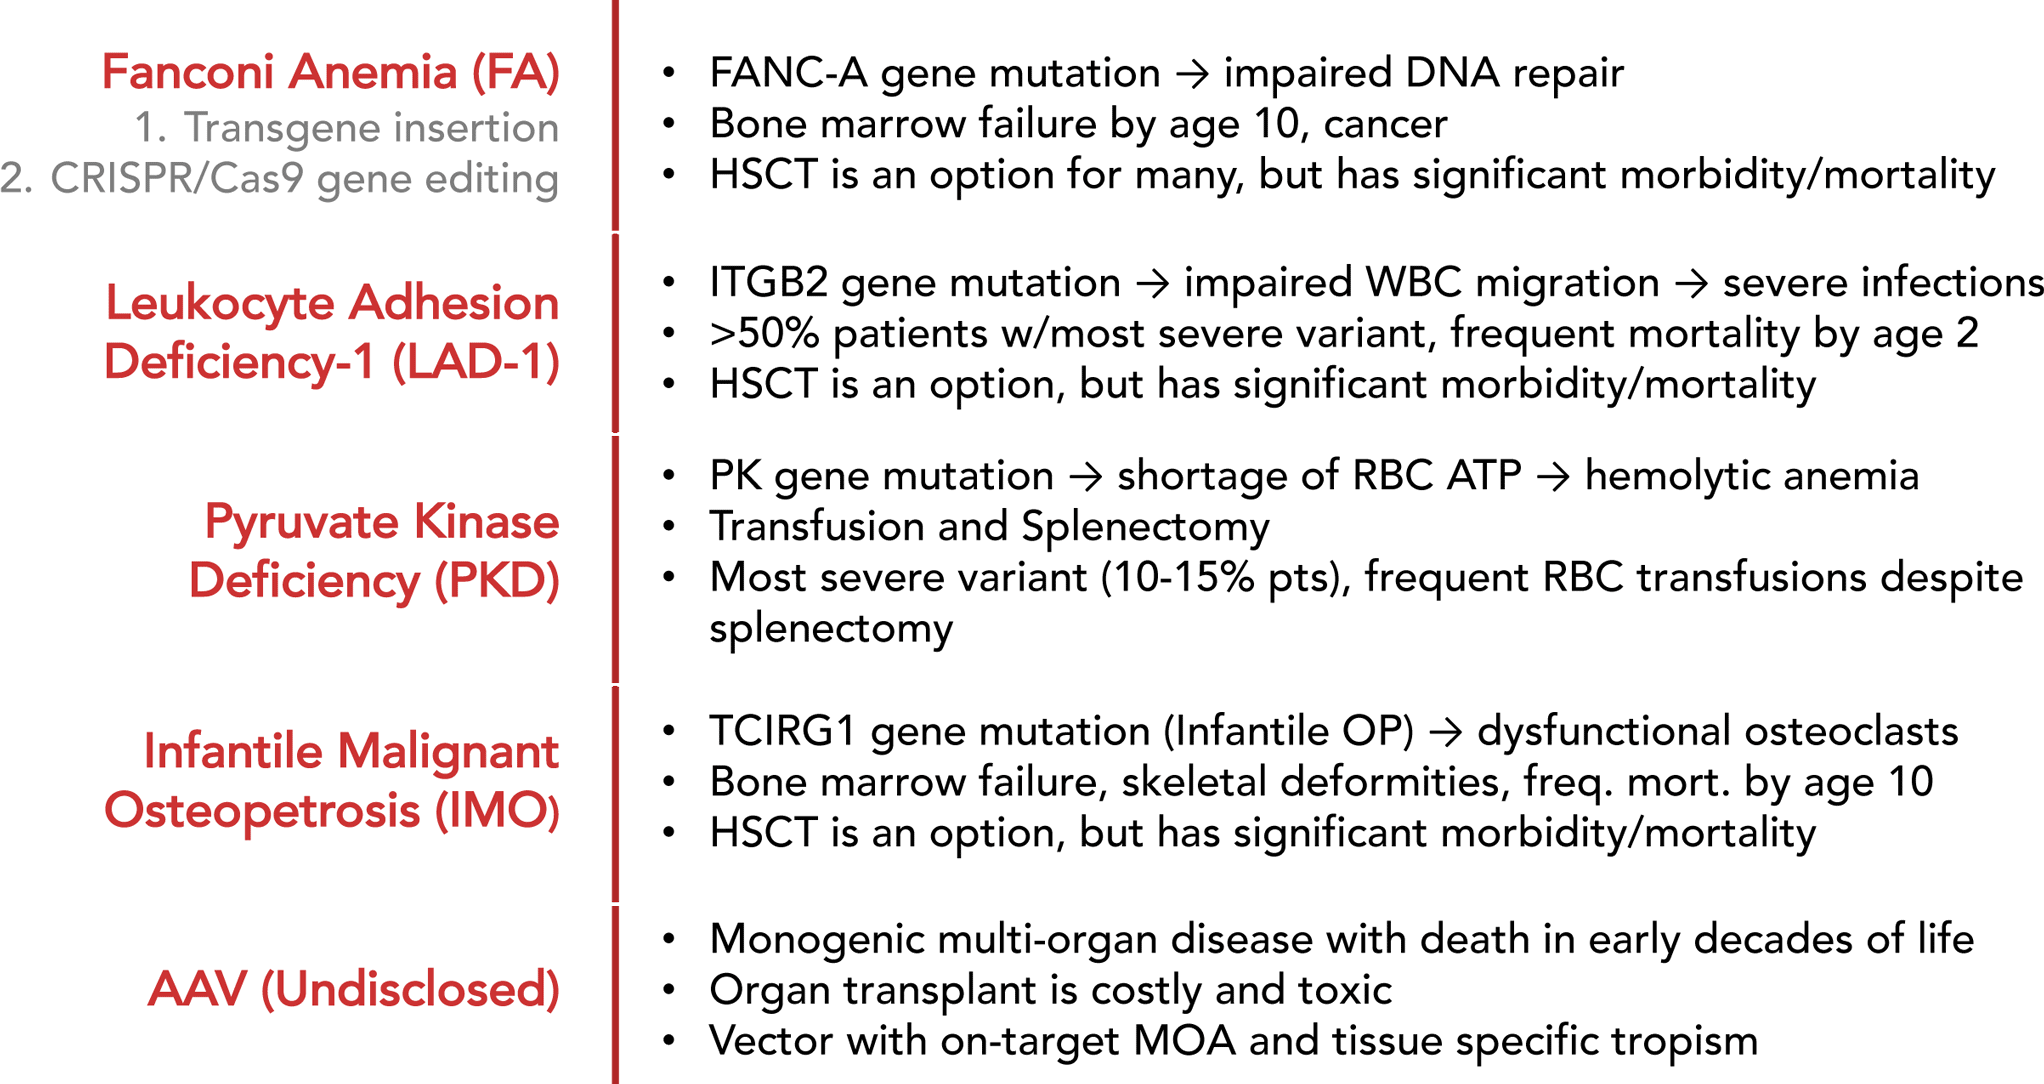 fanconi anemia essay This test is performed to detect induced chromosome breakage in cells from persons with suspected fanconi anemia diepoxybutane (deb)-induced chromosome breakage is significantly elevated in fanconi anemia cells, compared to cells from unaffected individualsthis test is indicated to rule out fanconi anemia, an inherited autosomal recessive.